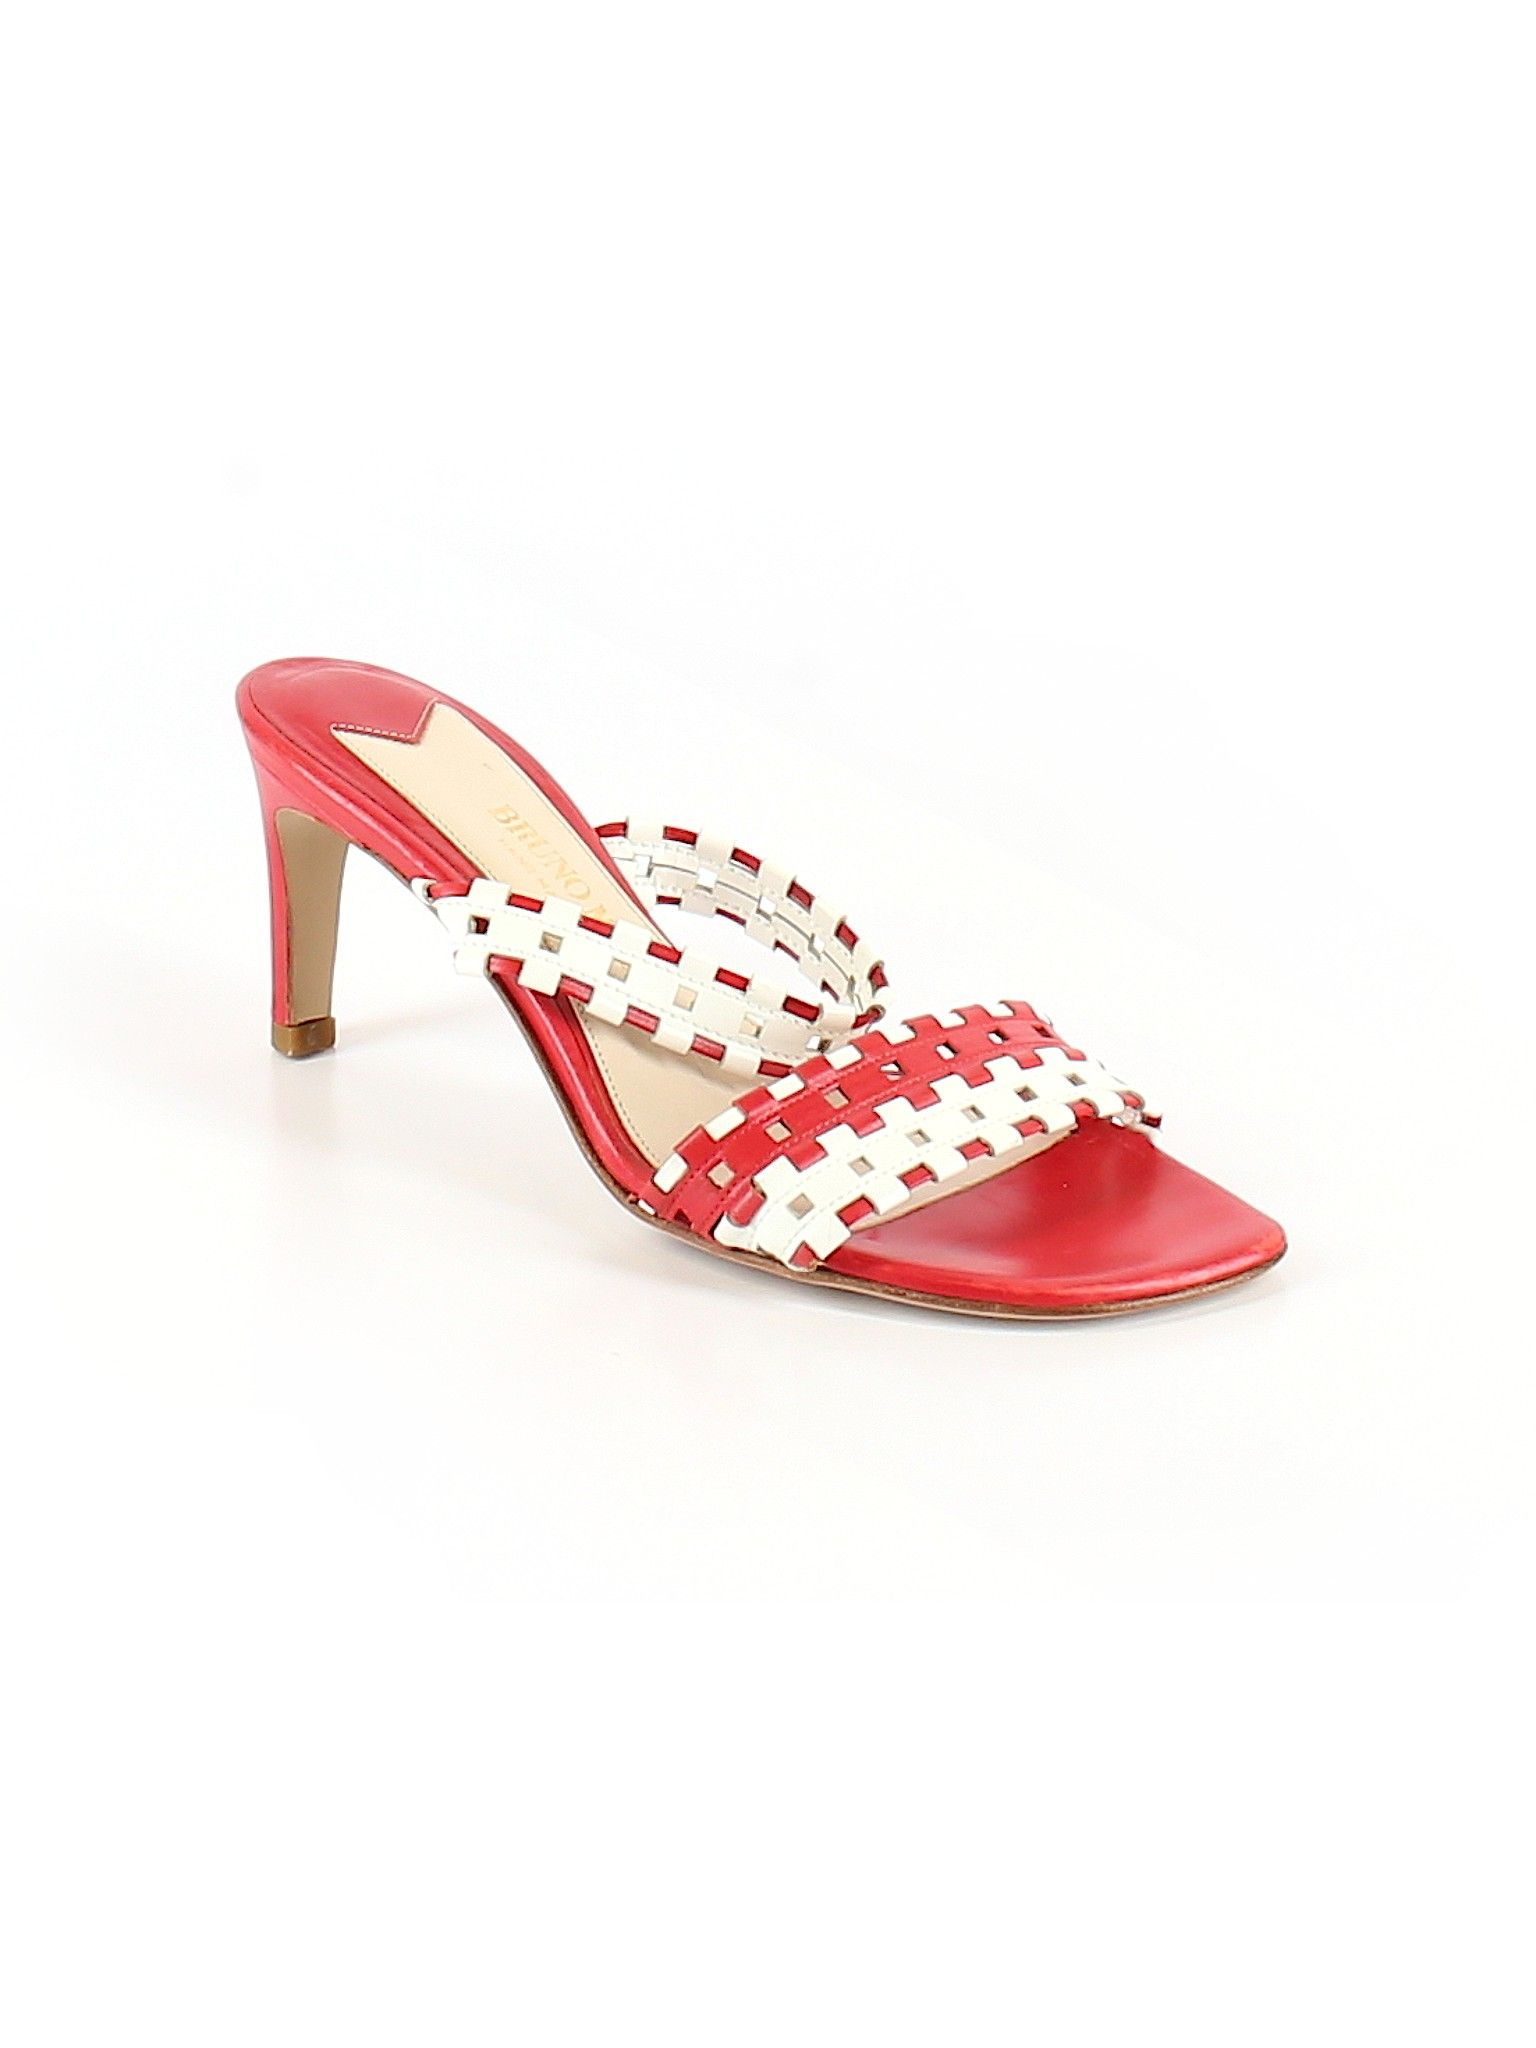 Bruno Magli Heel Red Solid Women S Shoes Size 6 1 2 Women Shoes Heels Womens Heels